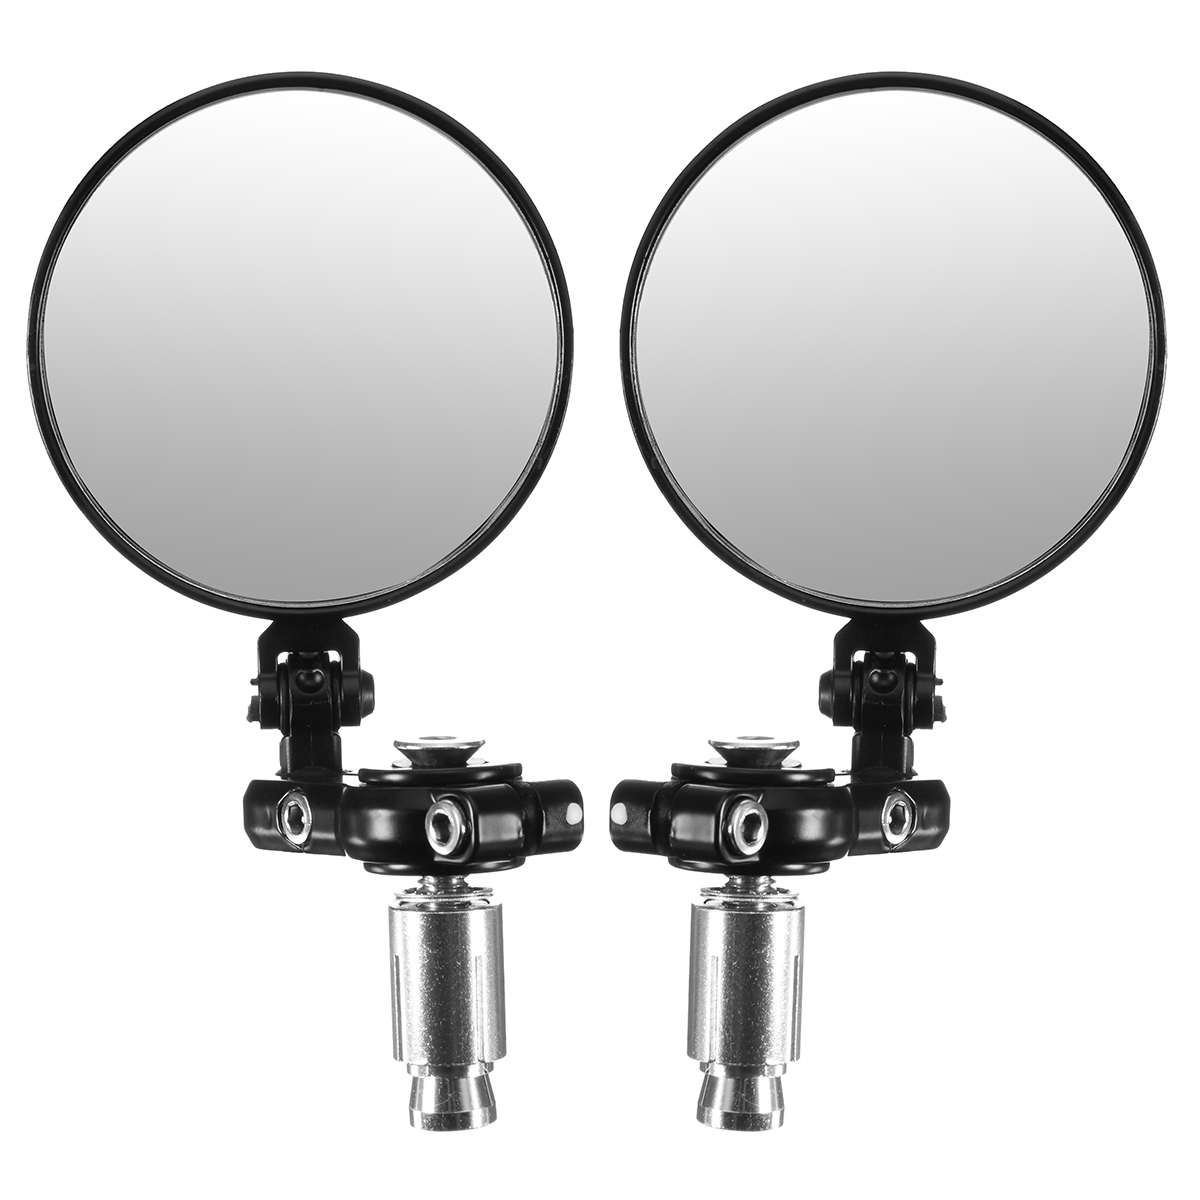 7/8inch Foldable Motorcycle Aluminum 3inch Round Handlebar End Rear View Mirrors